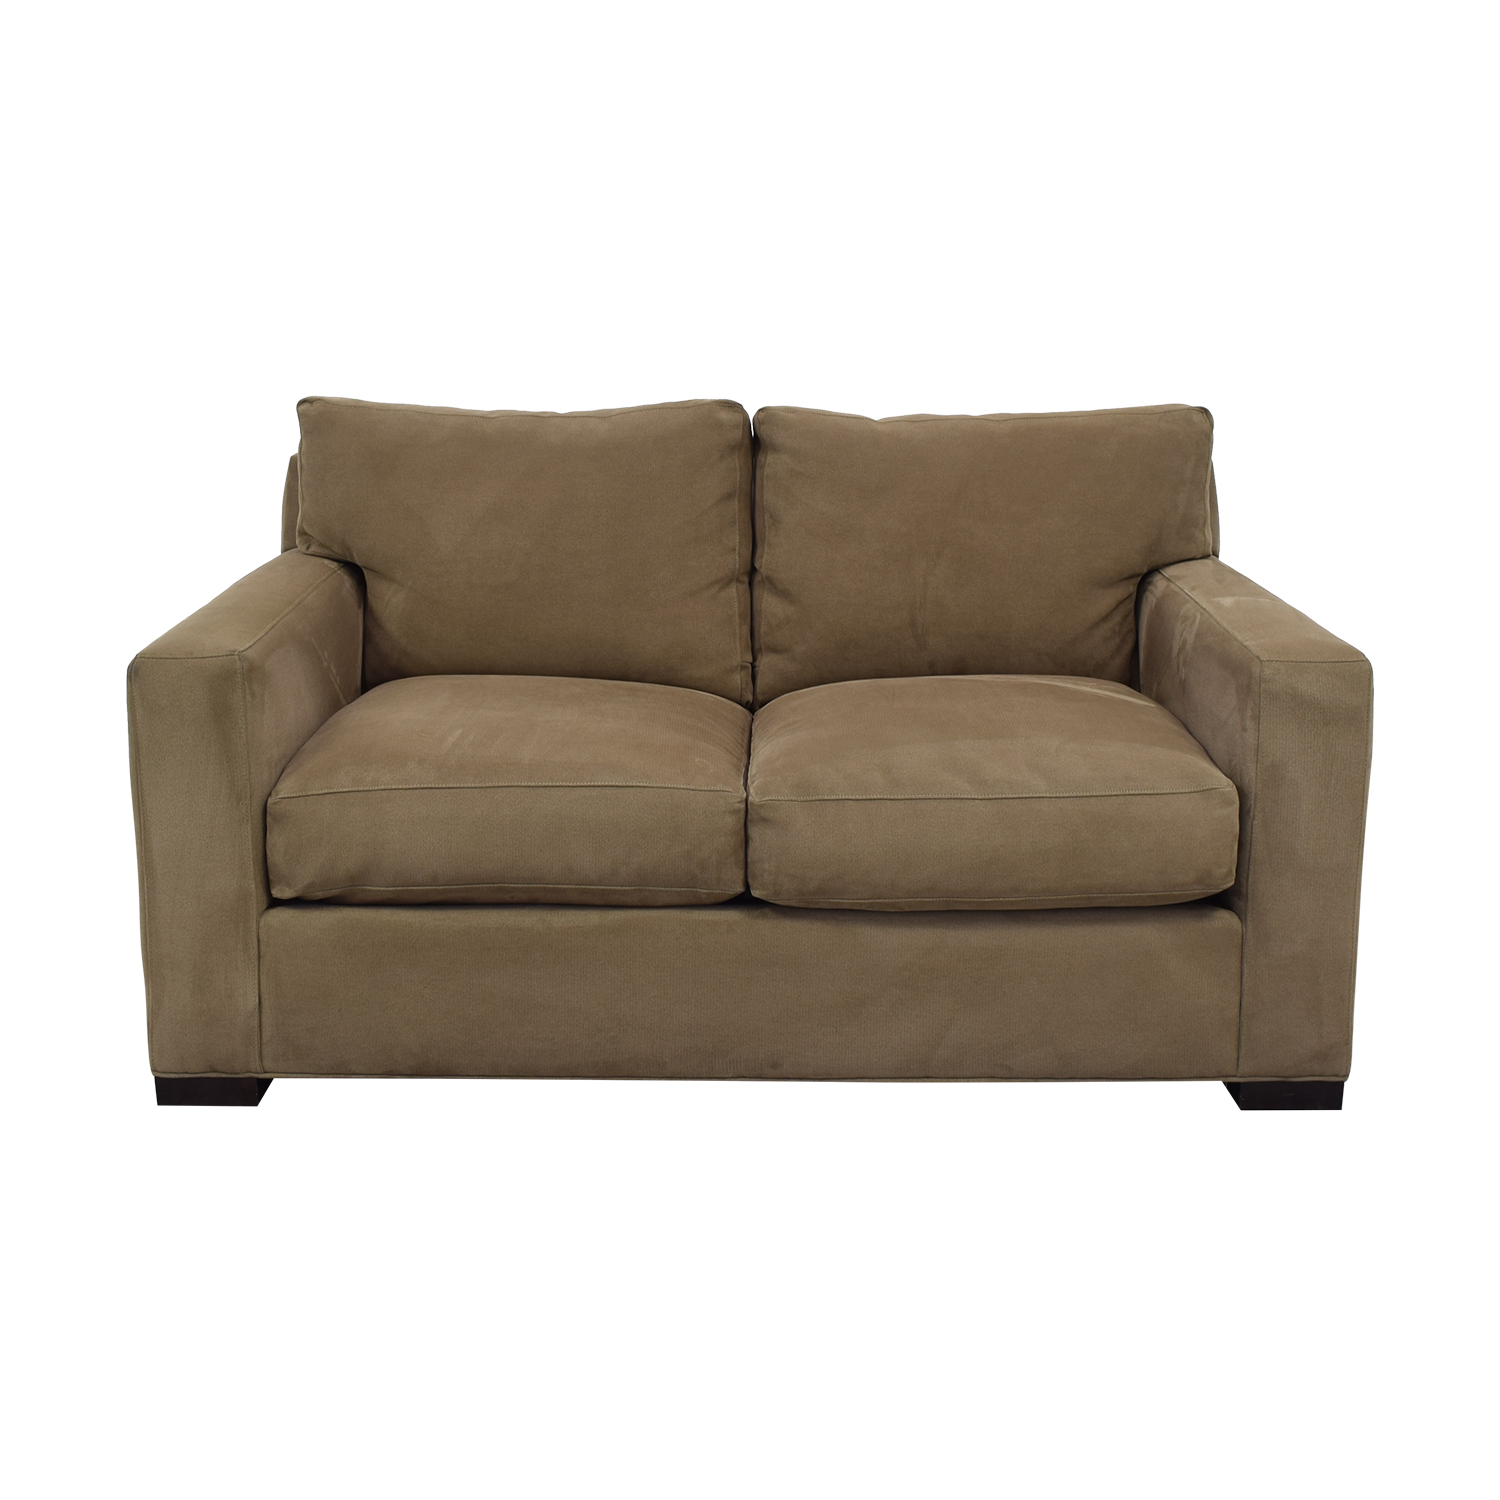 Crate & Barrel Crate & Barrel Axis II Loveseat nj